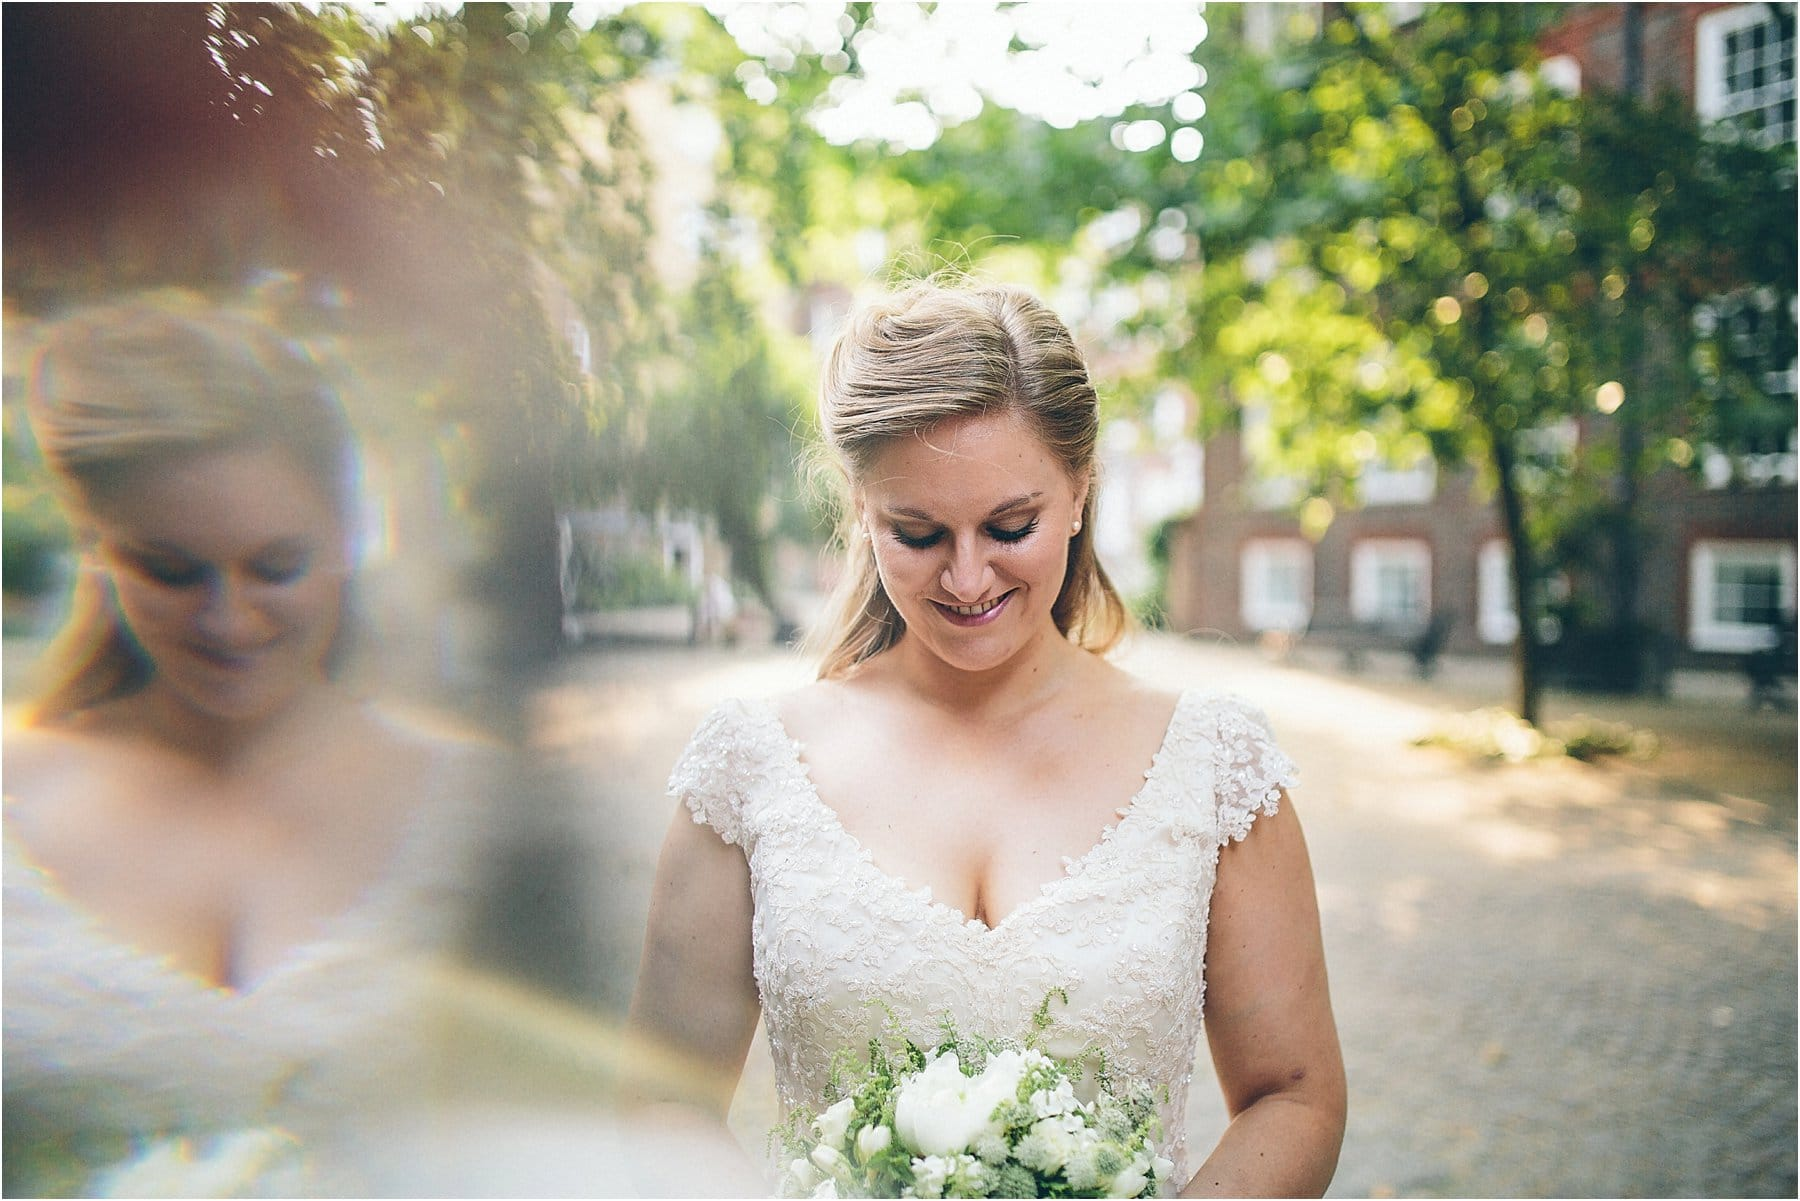 Middle_Temple_Wedding_Photography_095